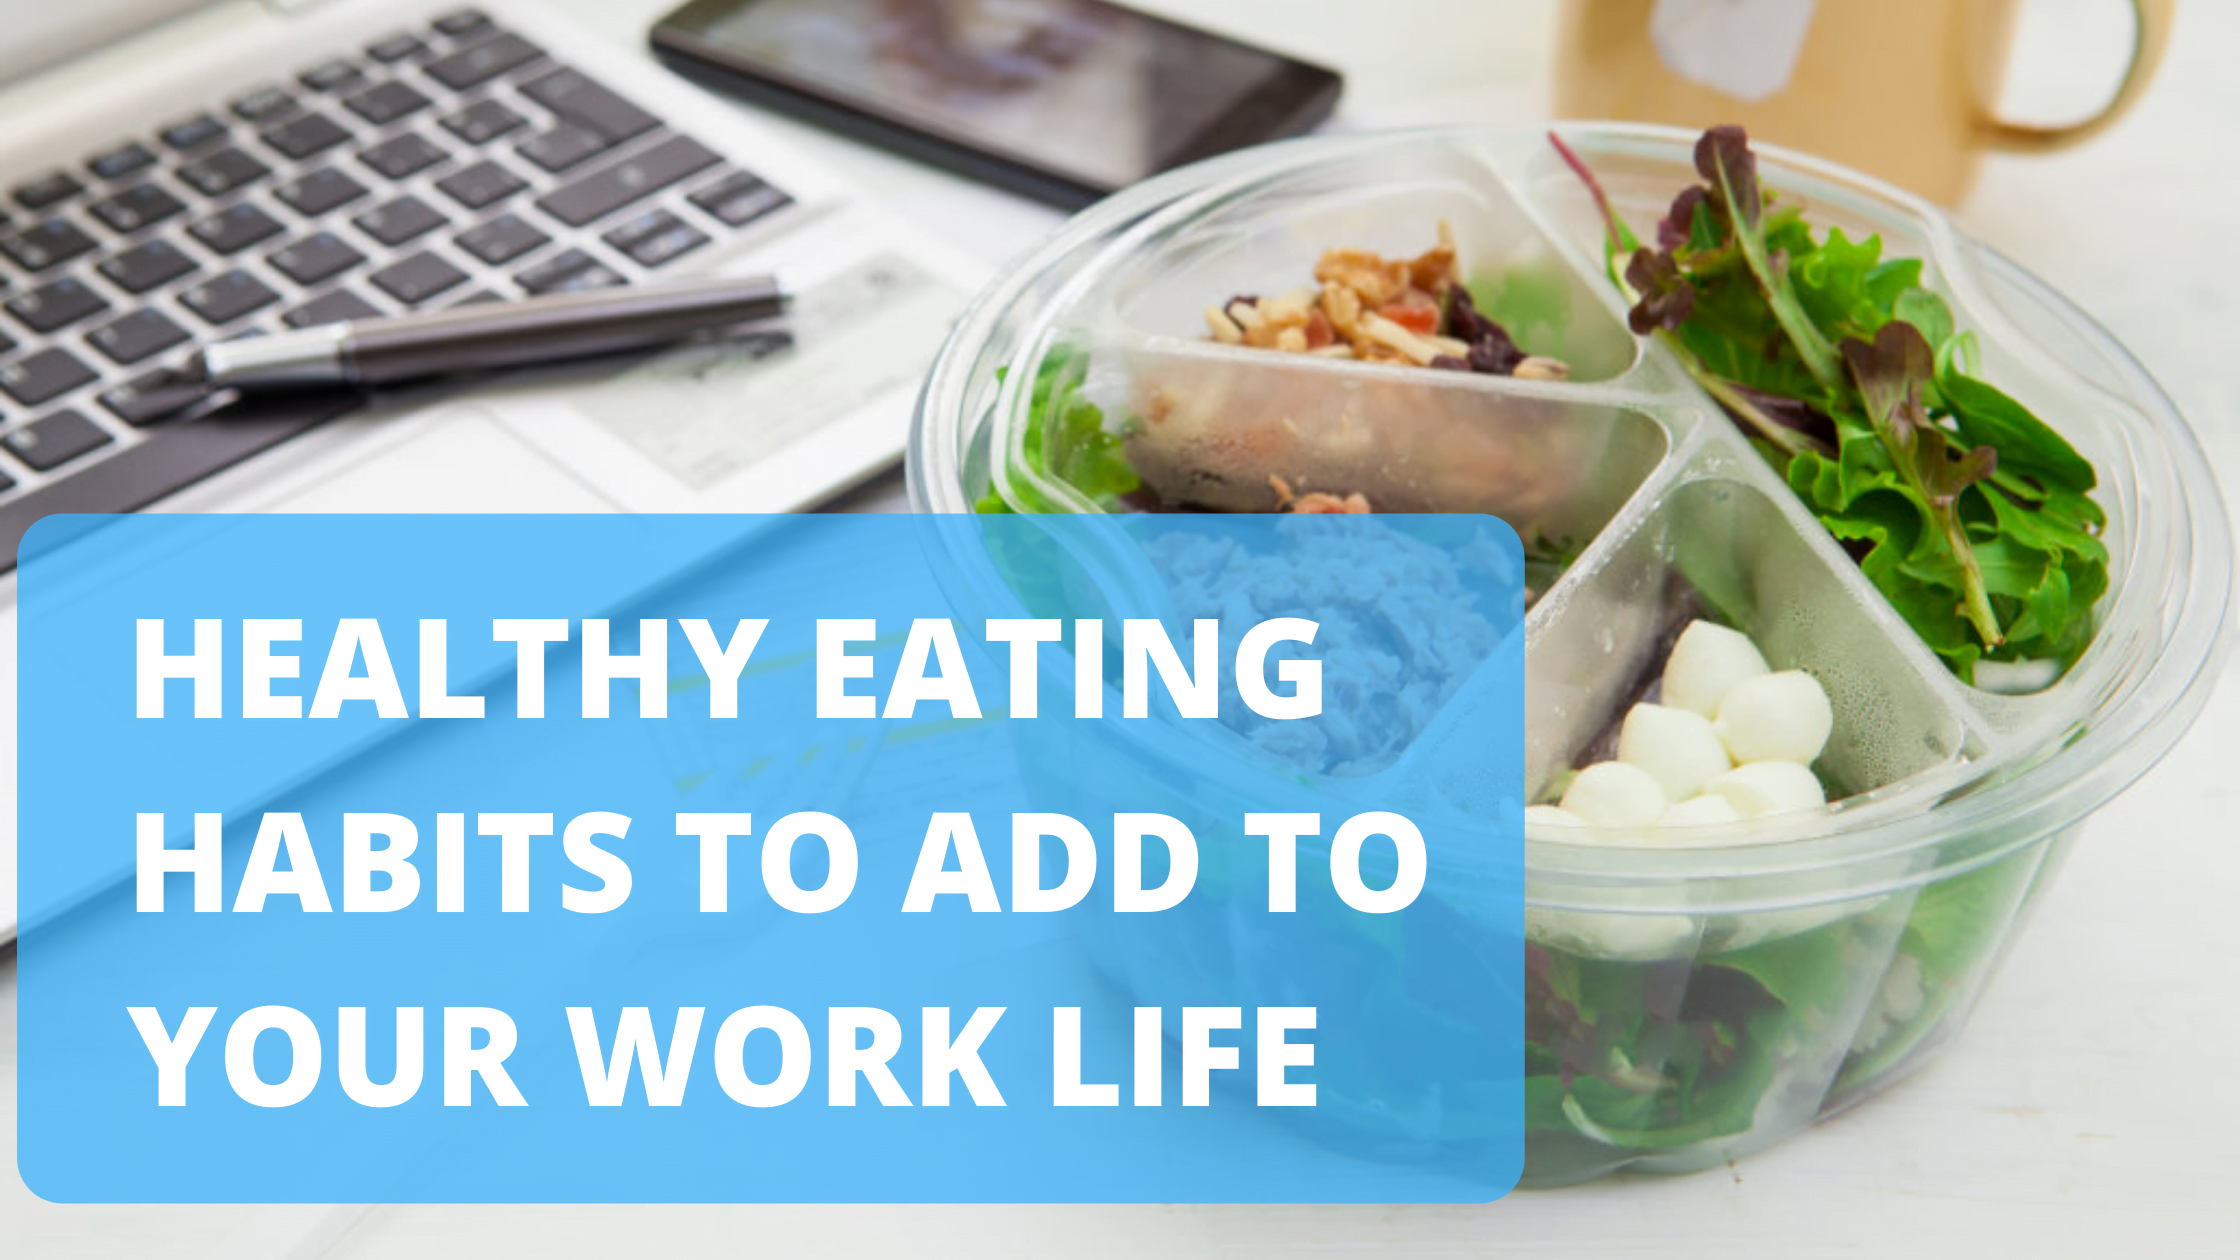 Healthy Eating Habits to Add to Your Work Life